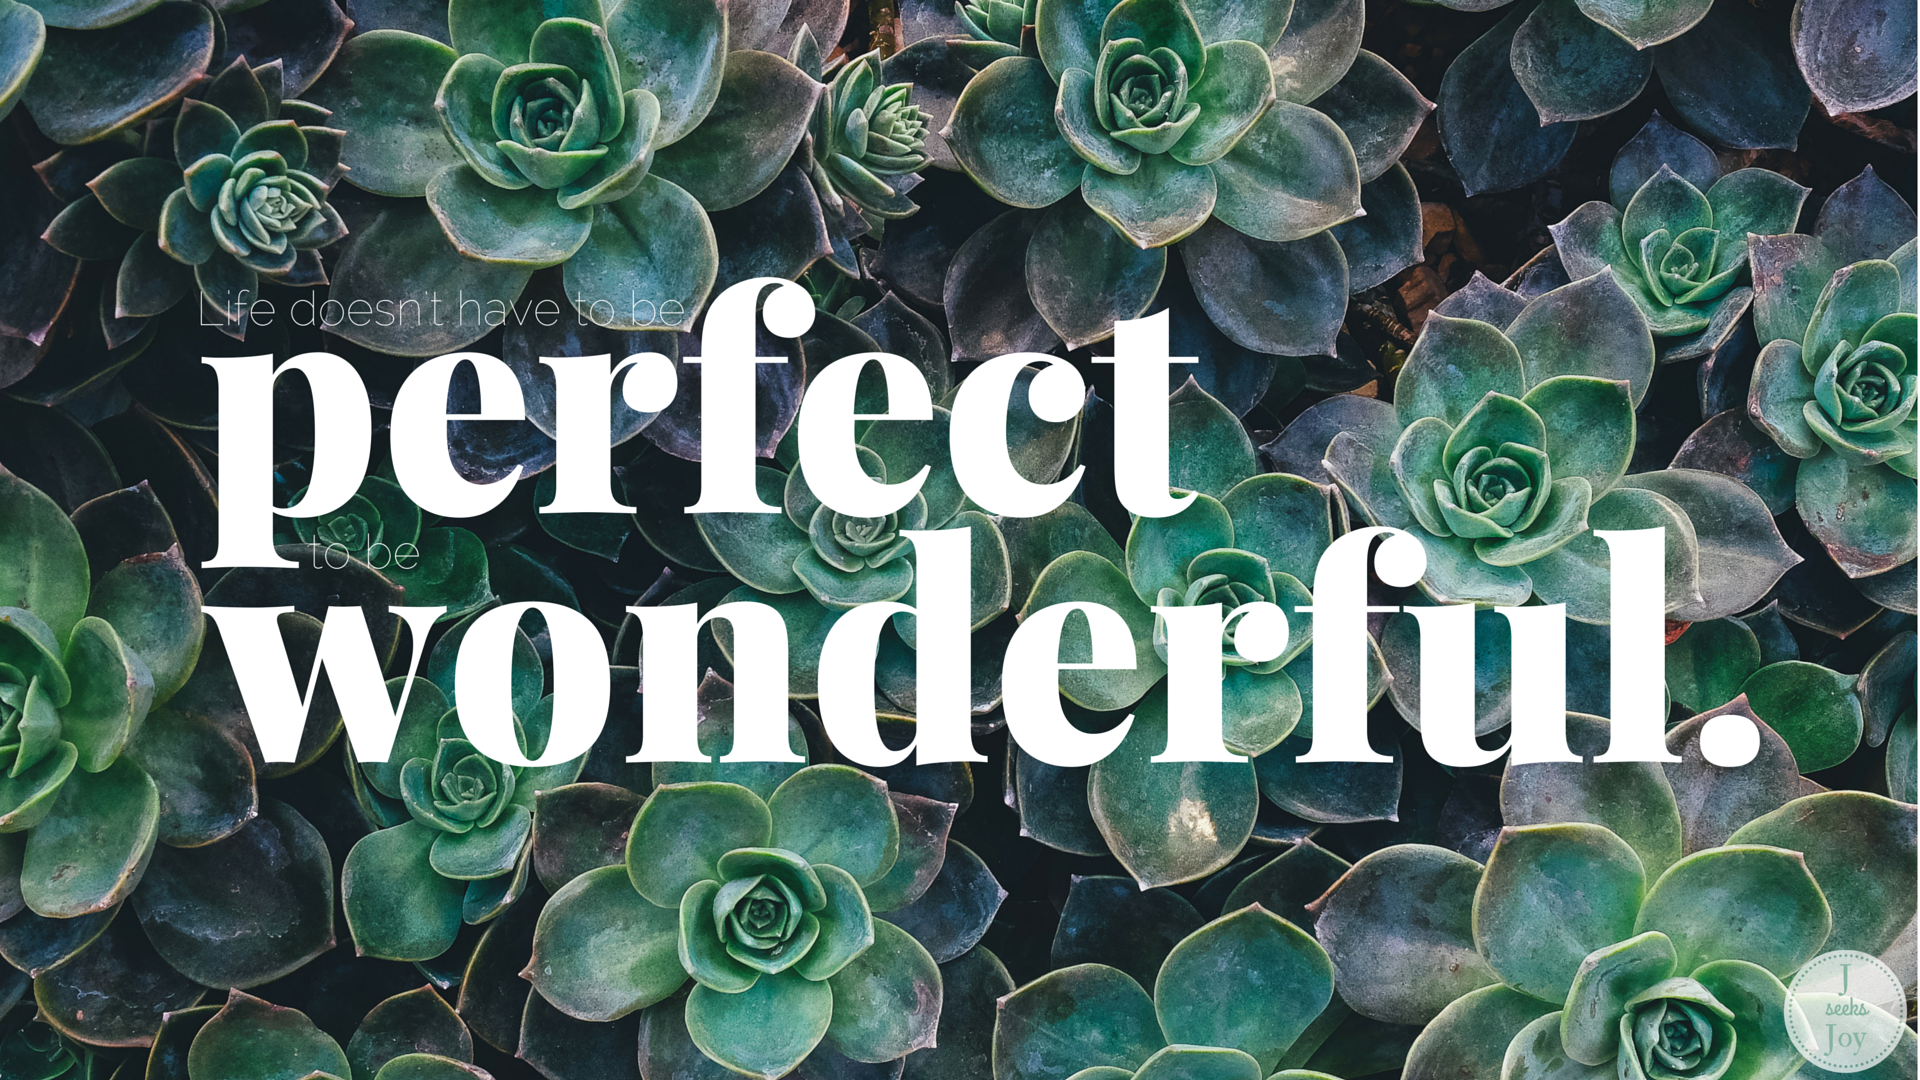 Life Doesn T Have To Be Perfect To Be Wonderful - Succulent Quotes Desktop - HD Wallpaper